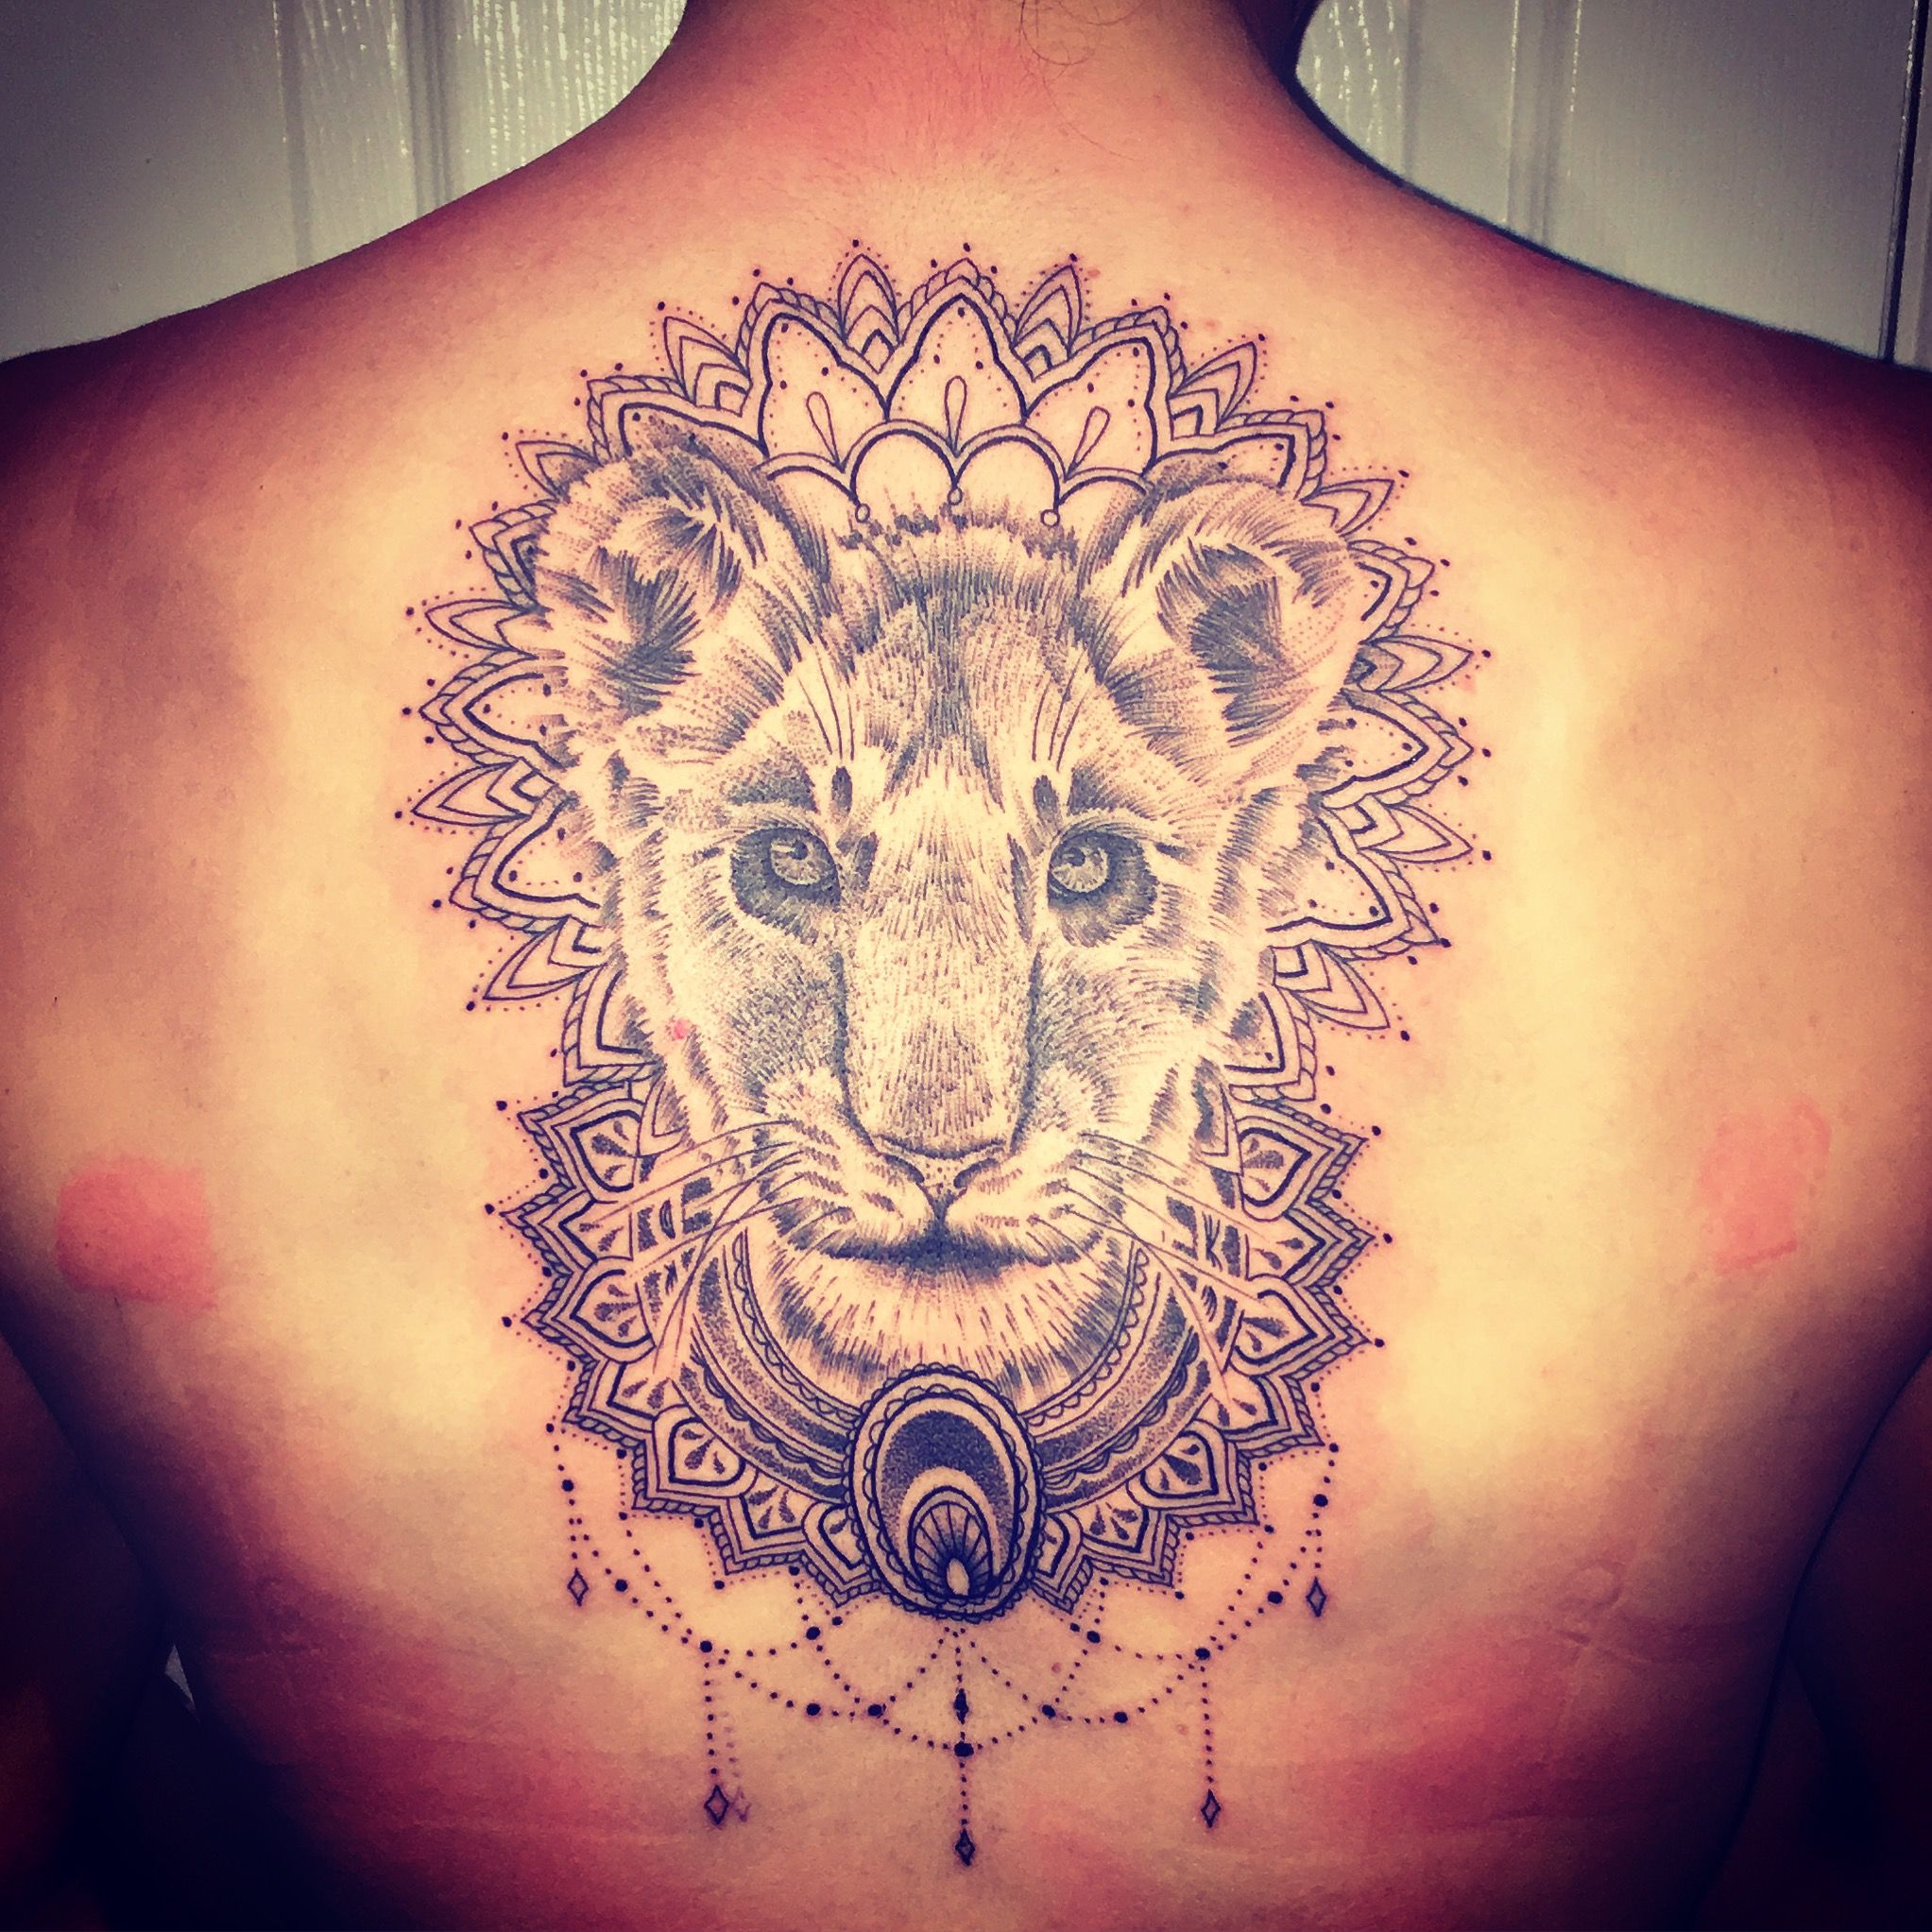 Lioness Mandala Female Back Tattoo Dot Work Black And Grey Back Tattoo Women Female Lion Tattoo Lioness Tattoo